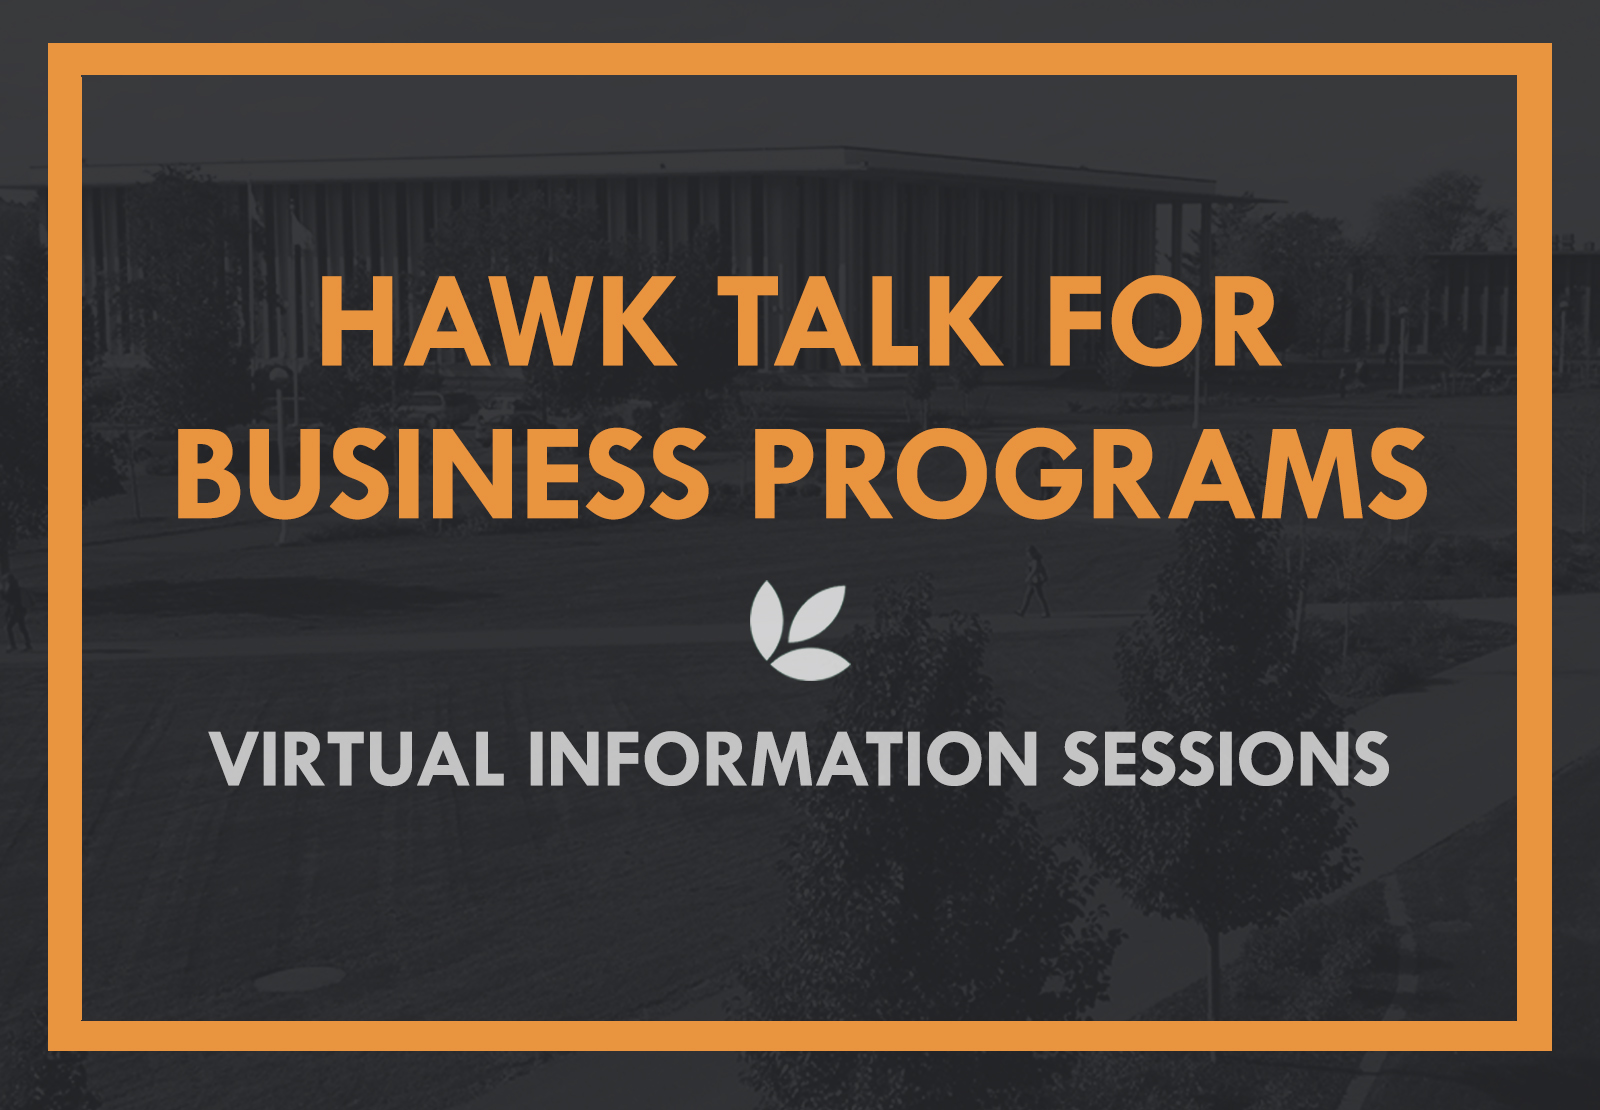 Hawk Talk for Business Programs